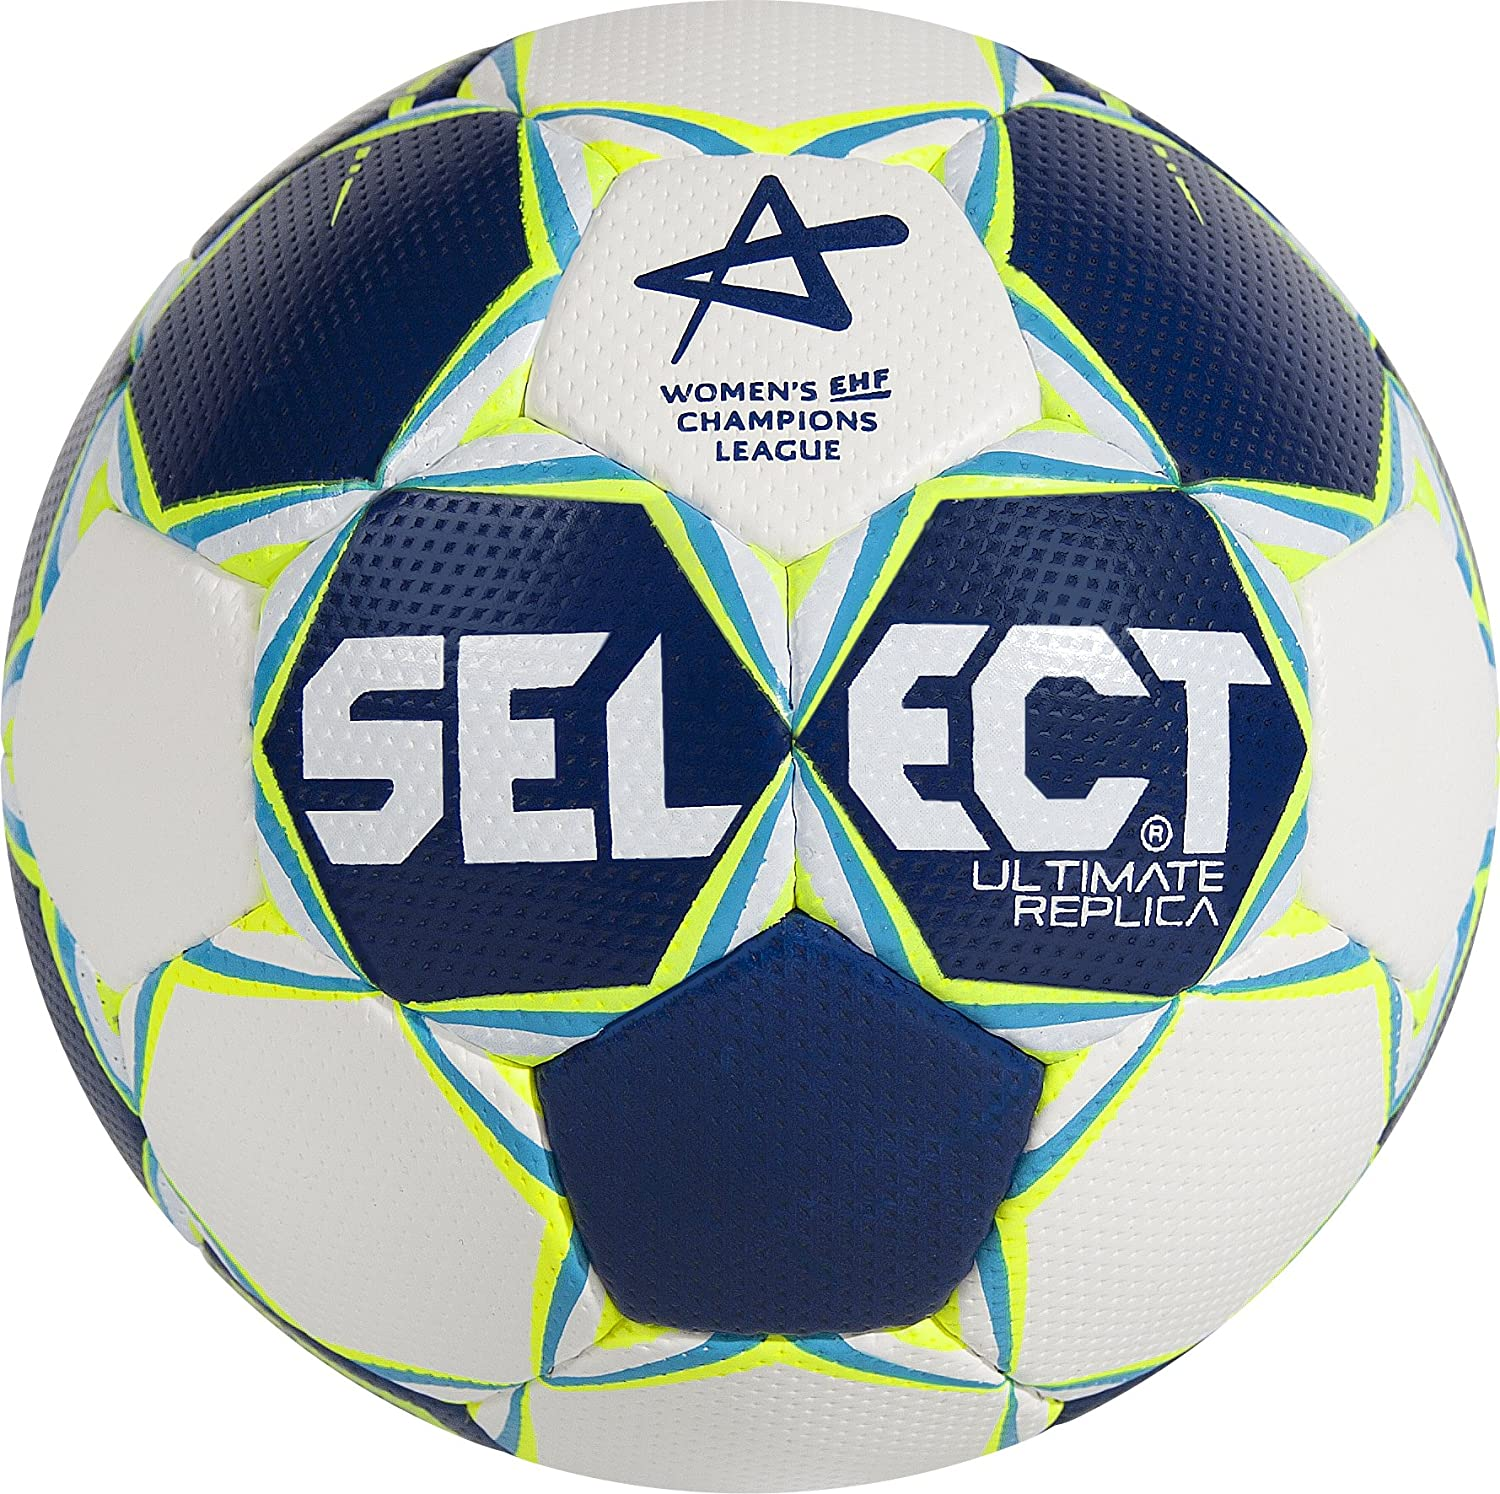 Select Balón de Balonmano Ultimate Replica CL para Mujer, Colour Blanco/Amarillo/